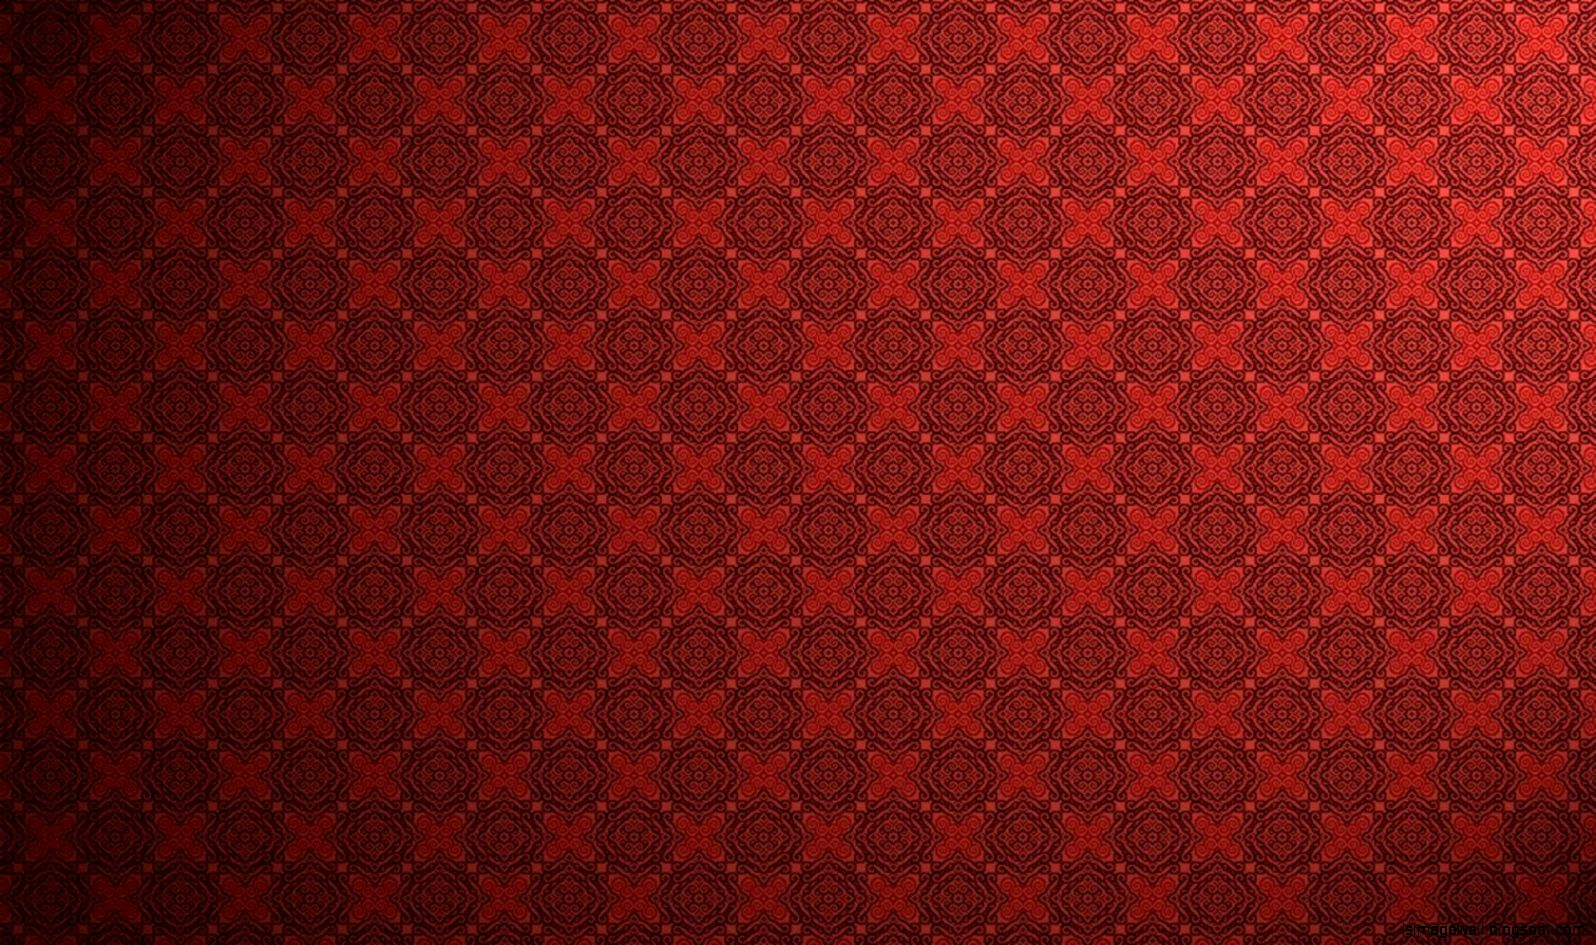 red textured background hd - photo #3